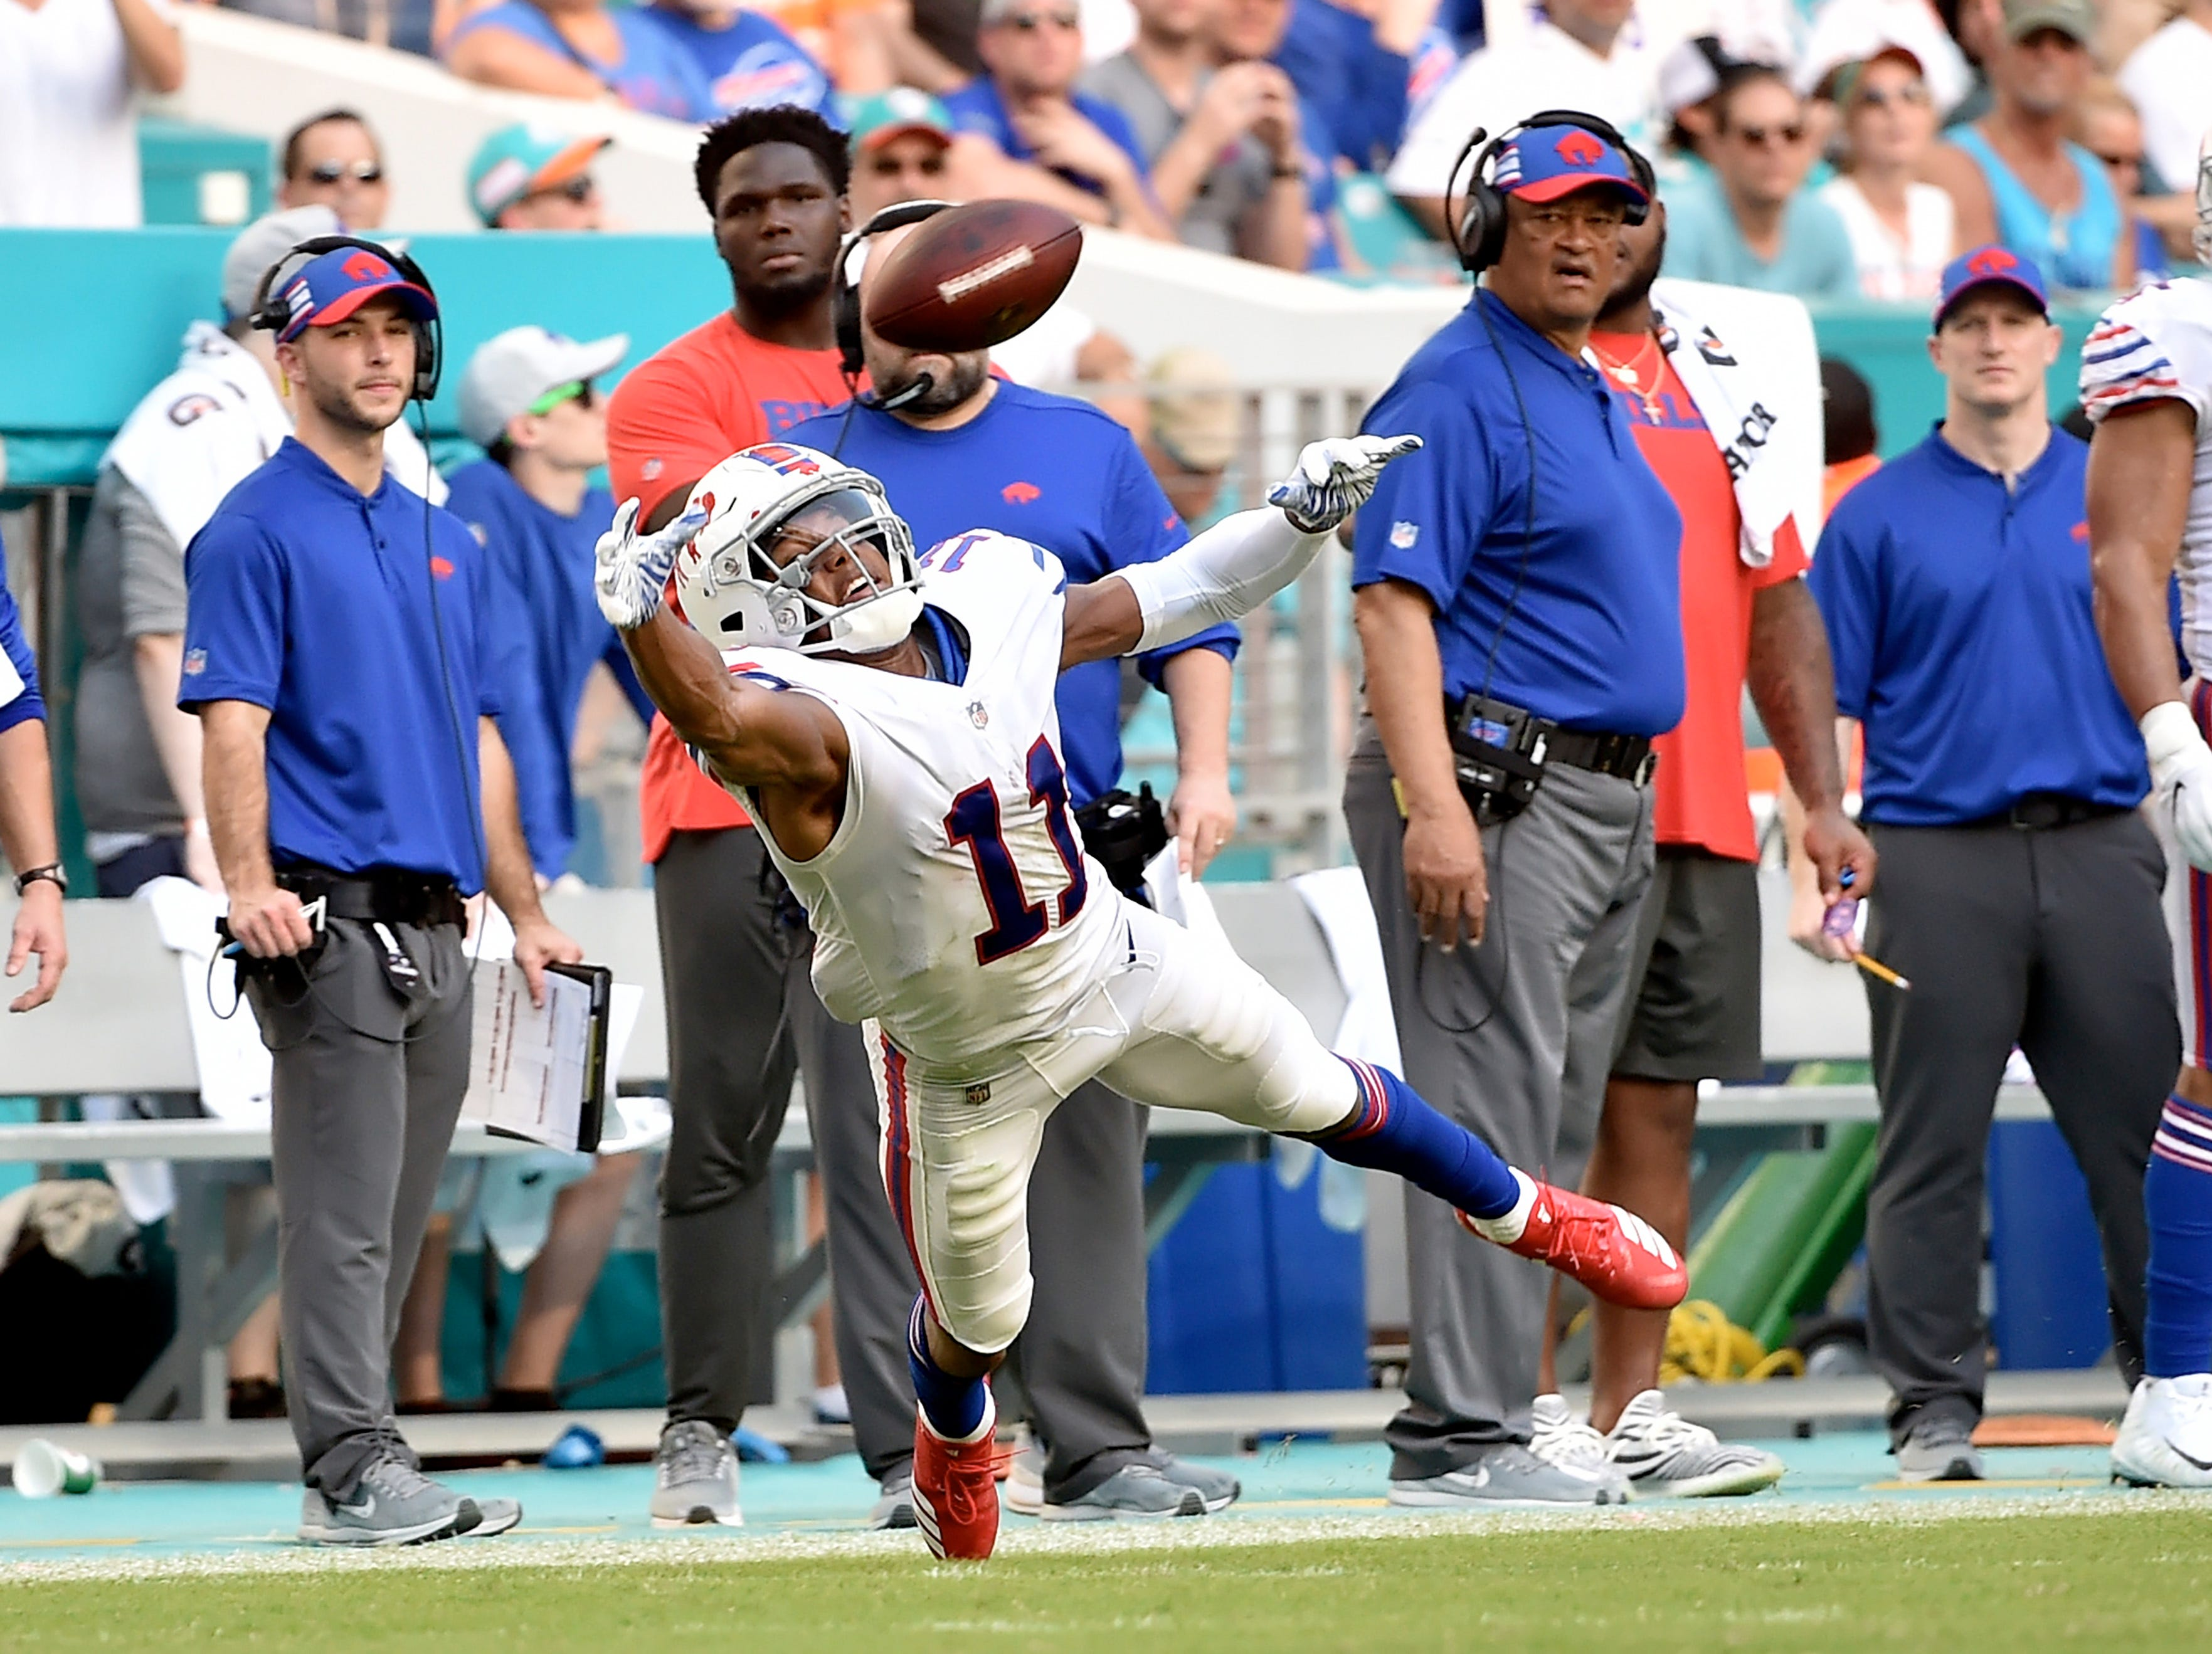 Dec 2, 2018; Miami Gardens, FL, USA; Buffalo Bills wide receiver Zay Jones (11) is unable to make a catch against the Miami Dolphins during the second half at Hard Rock Stadium. Mandatory Credit: Steve Mitchell-USA TODAY Sports